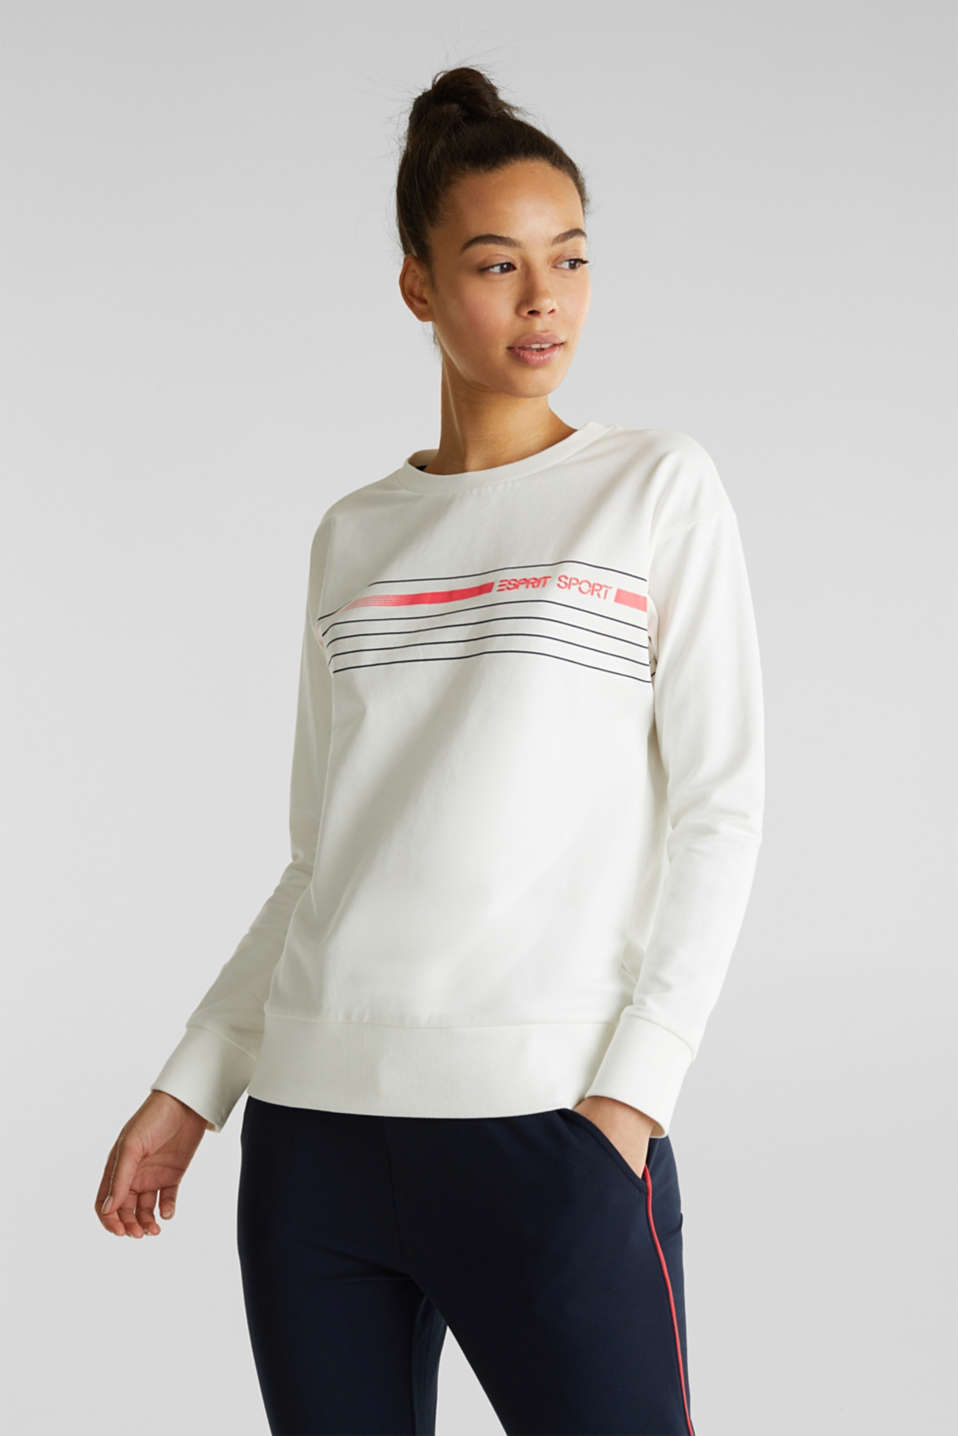 Esprit - Sweat-shirt stretch à imprimé